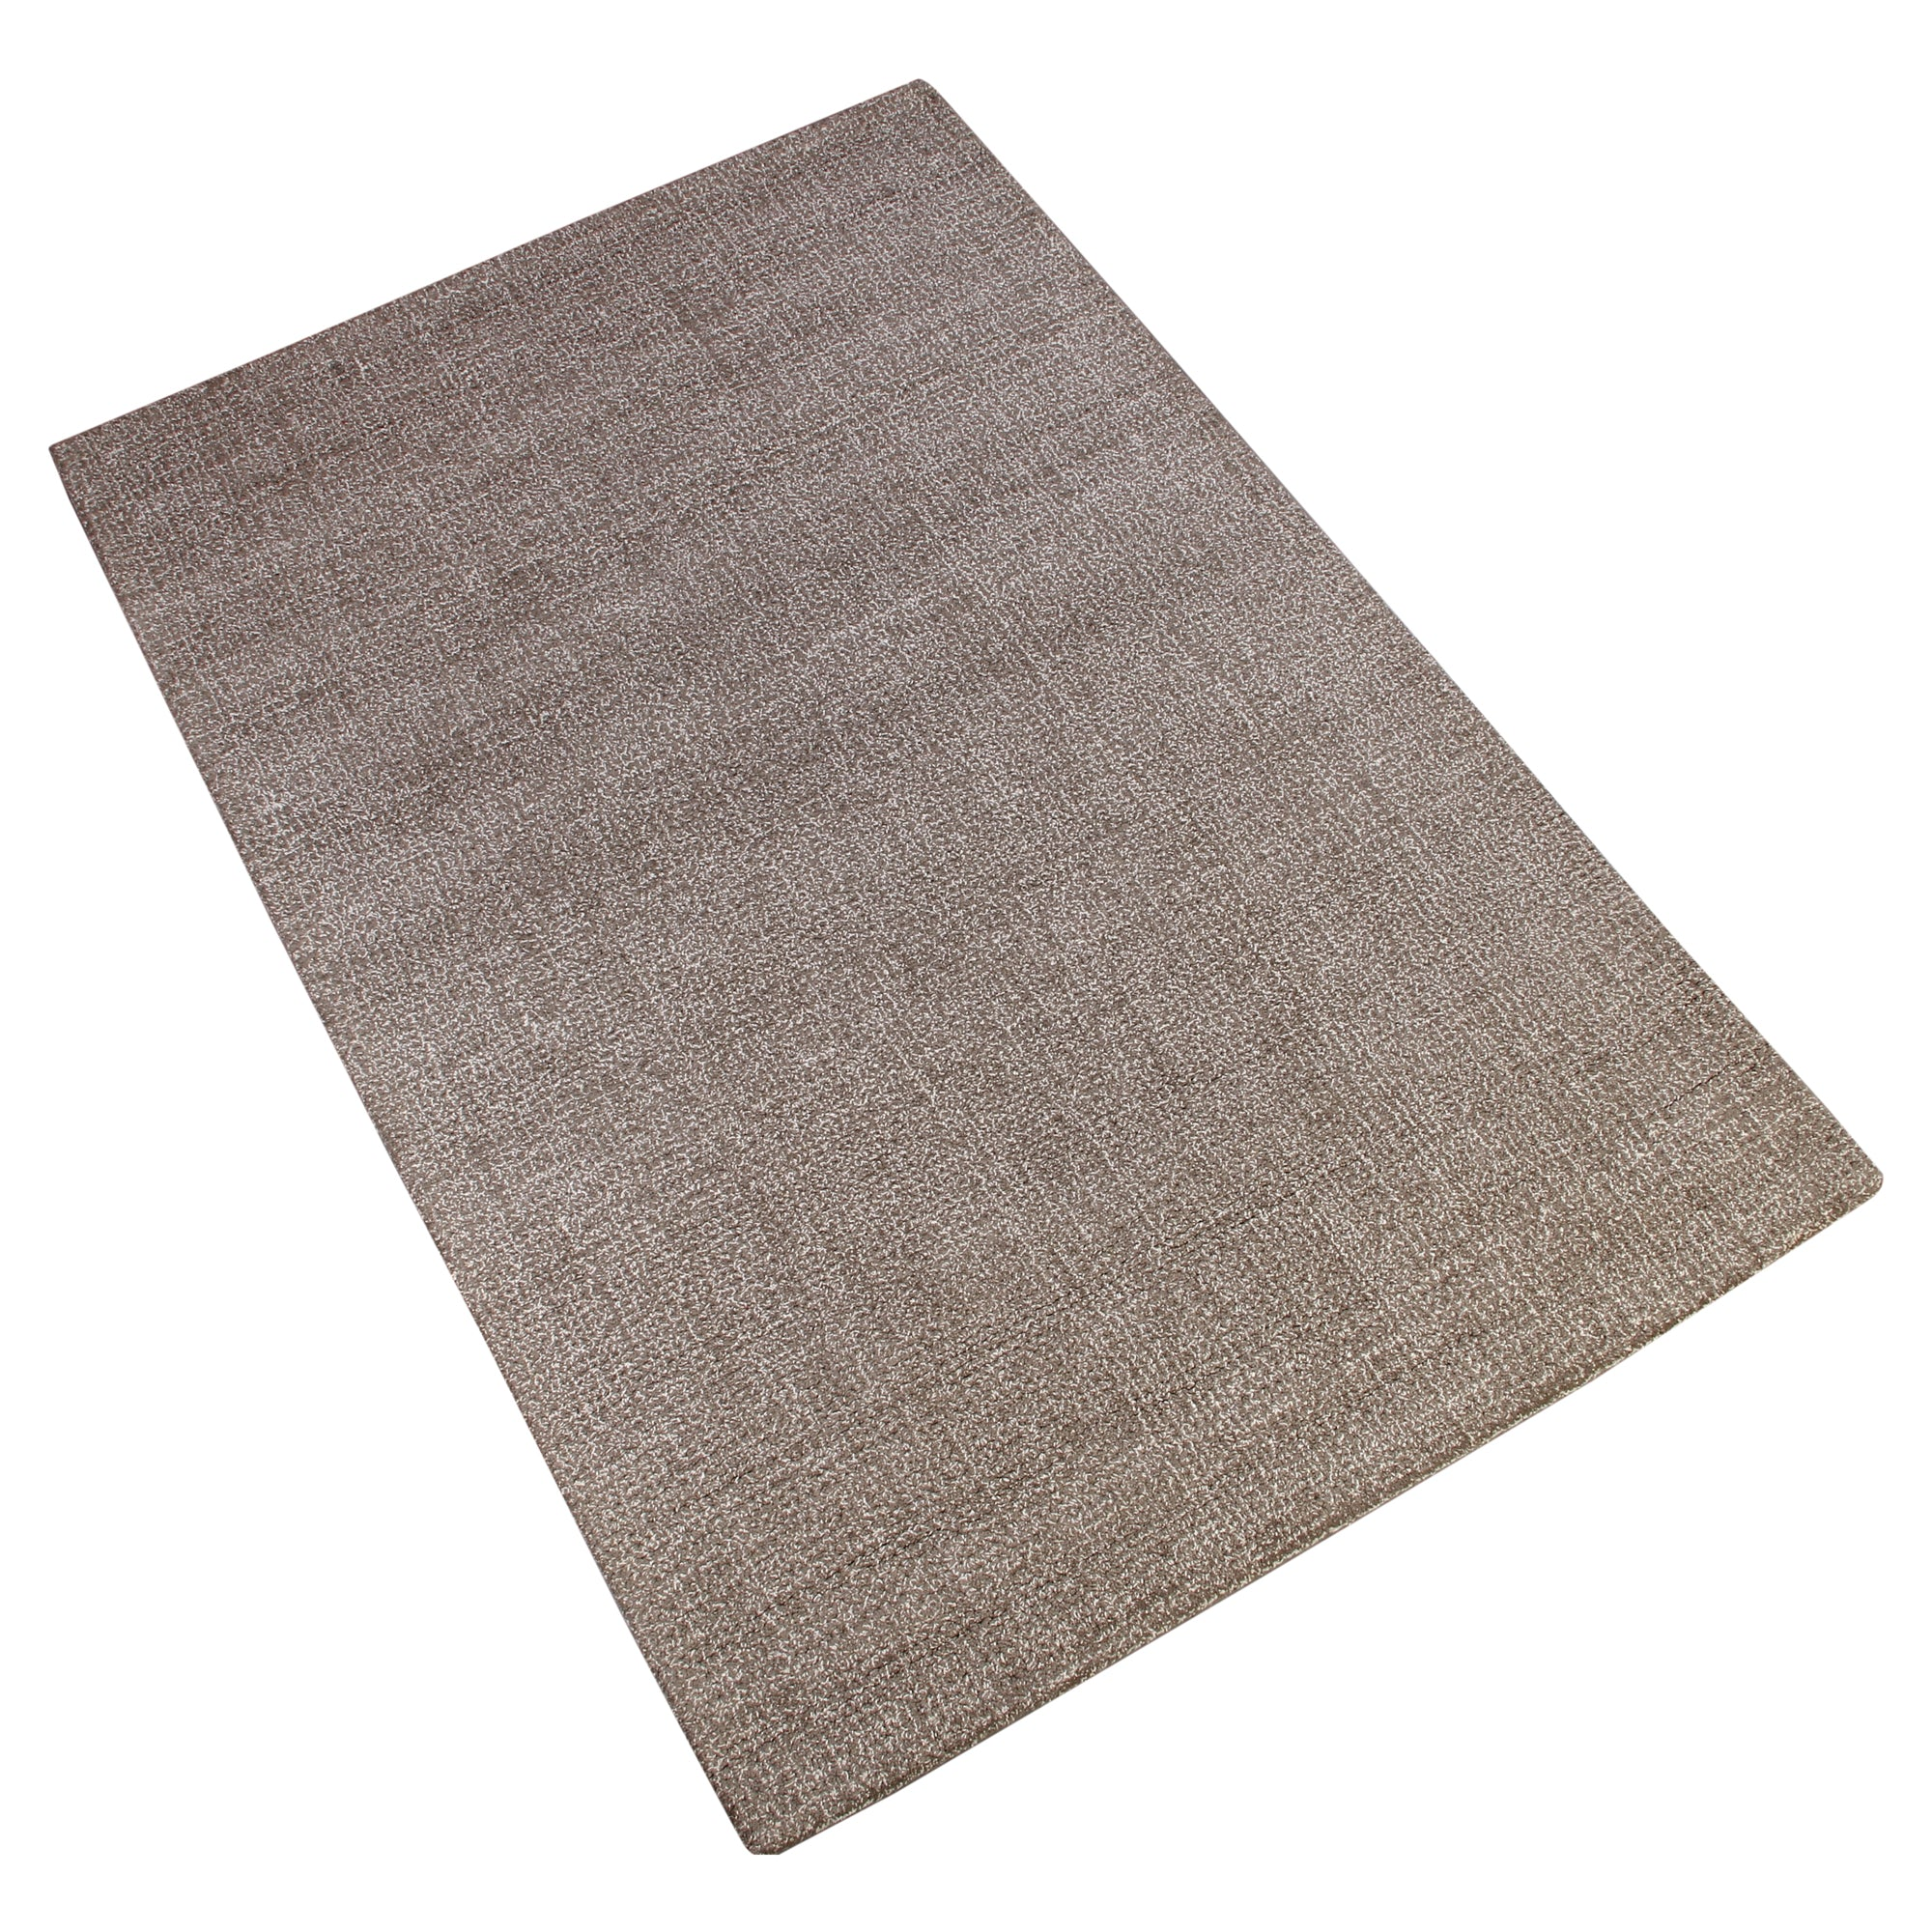 BROWN NEUTRAL JEQUARD HAND TUFTED RUG